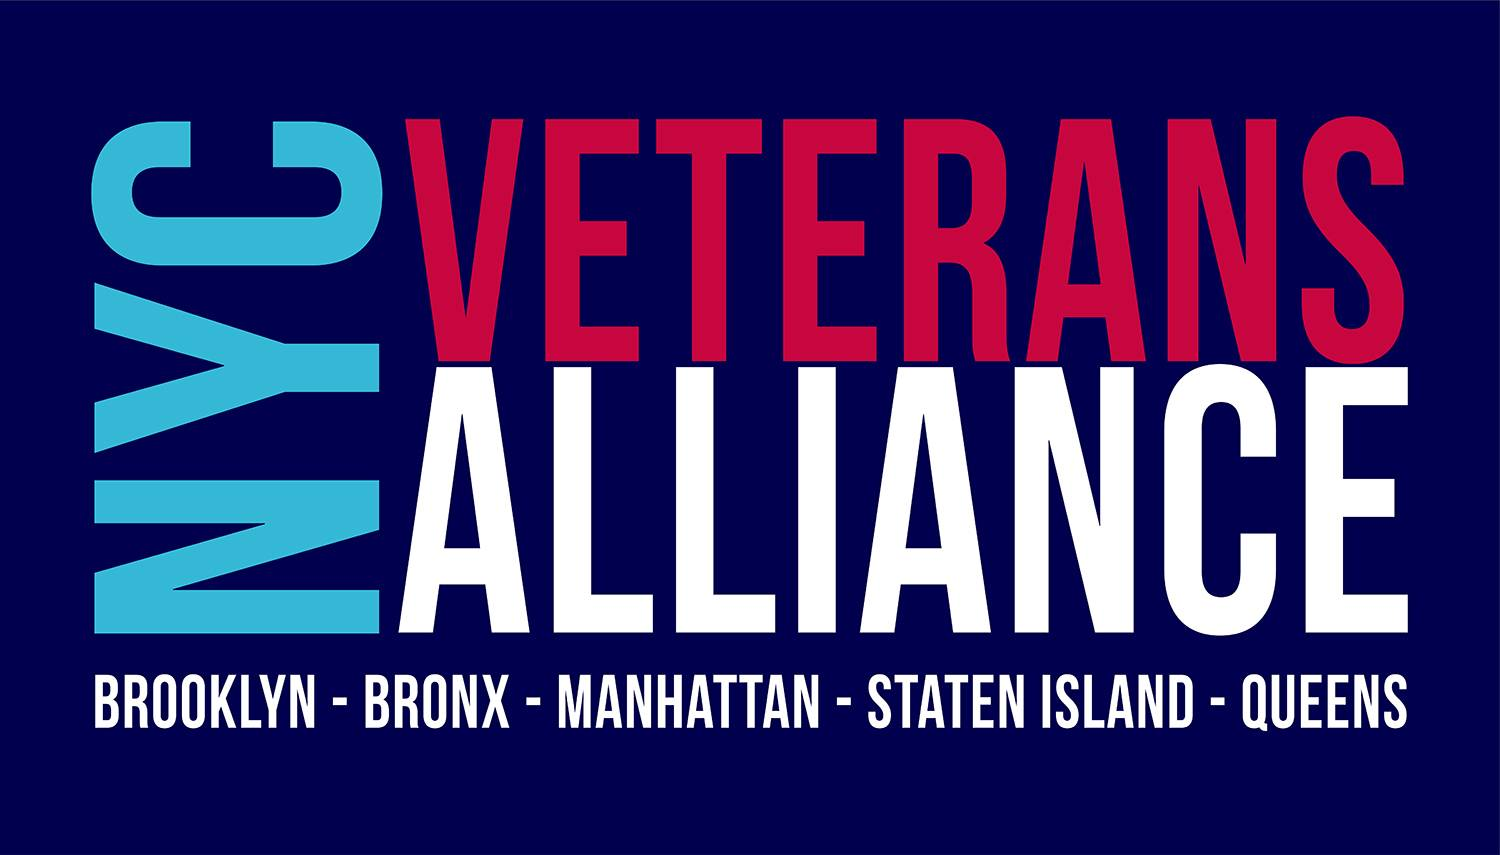 Logo de NYC Veterans Alliance